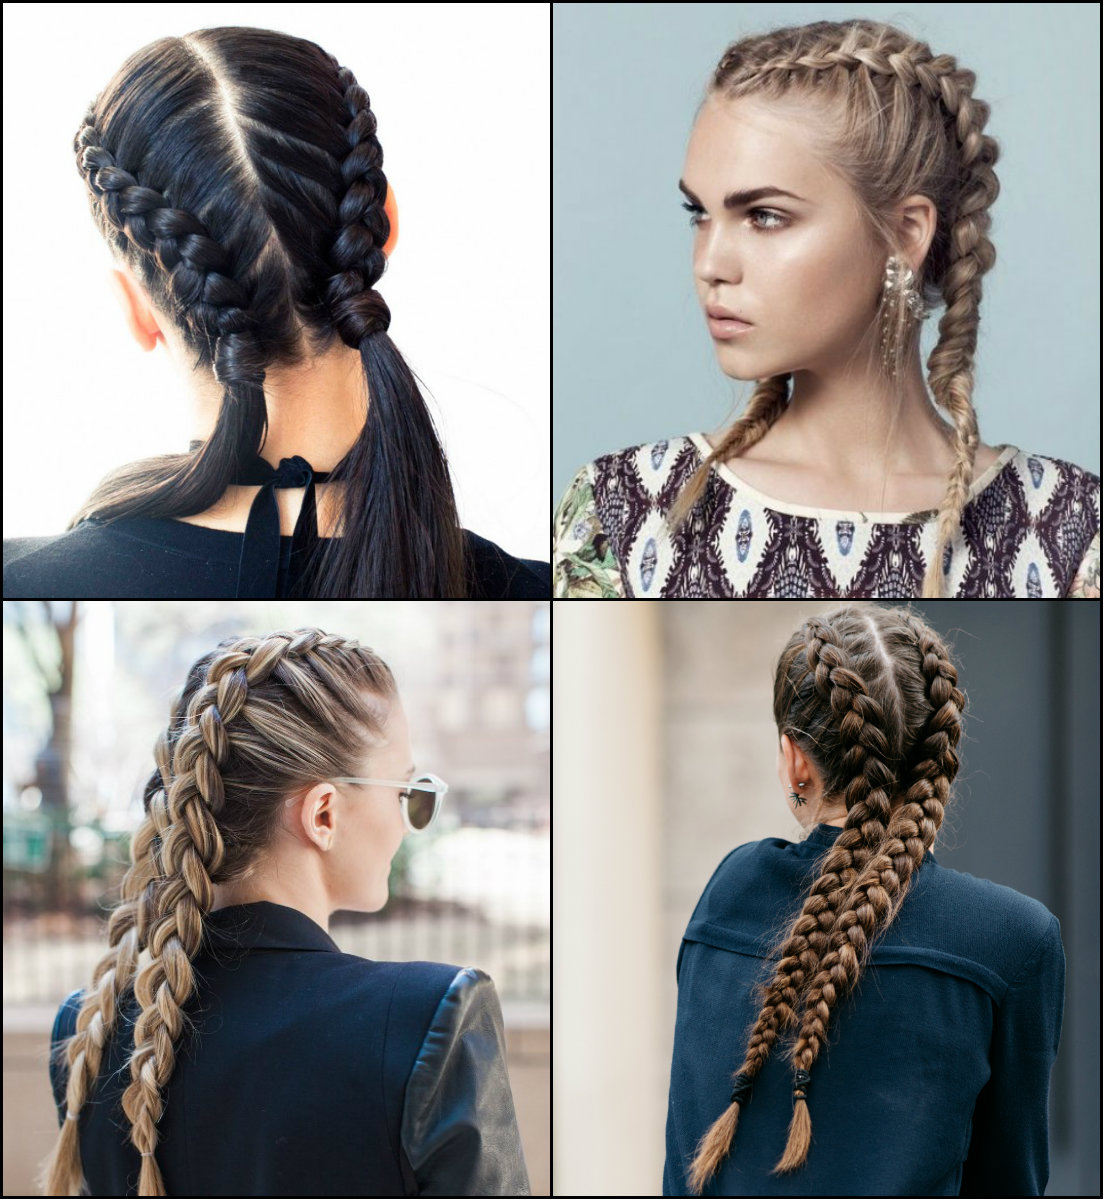 Volitional Double Braids Hairstyles To Dare Look Different ...